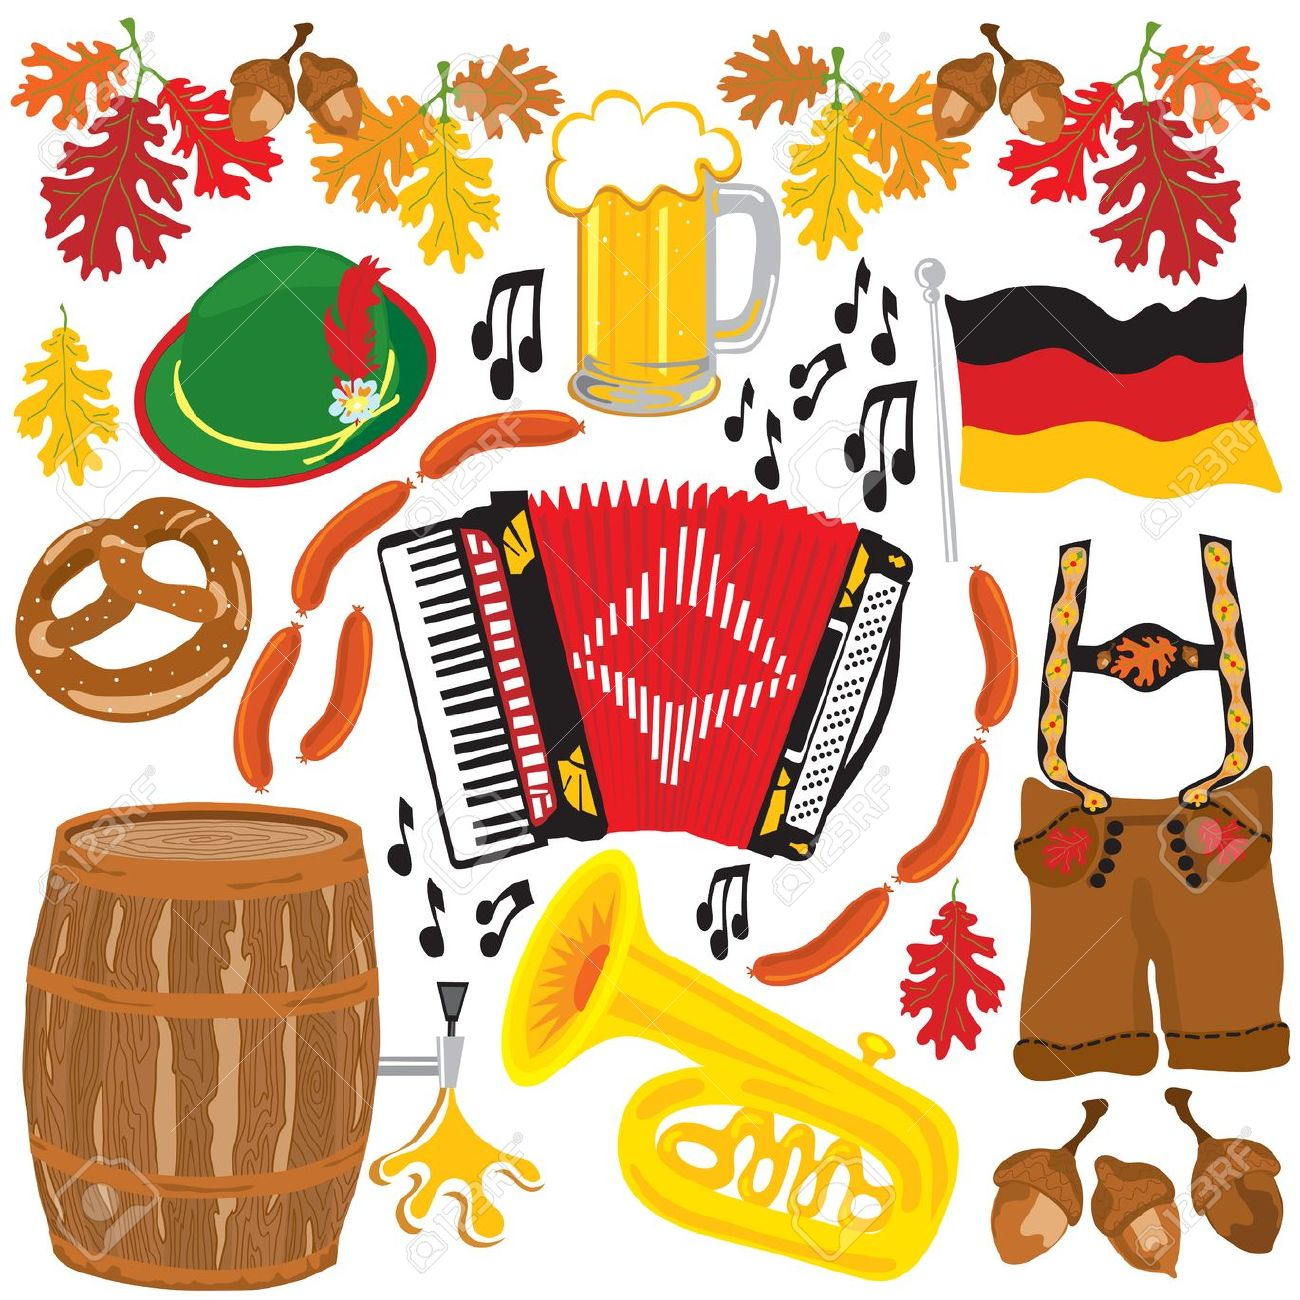 german kids clipart - photo #20